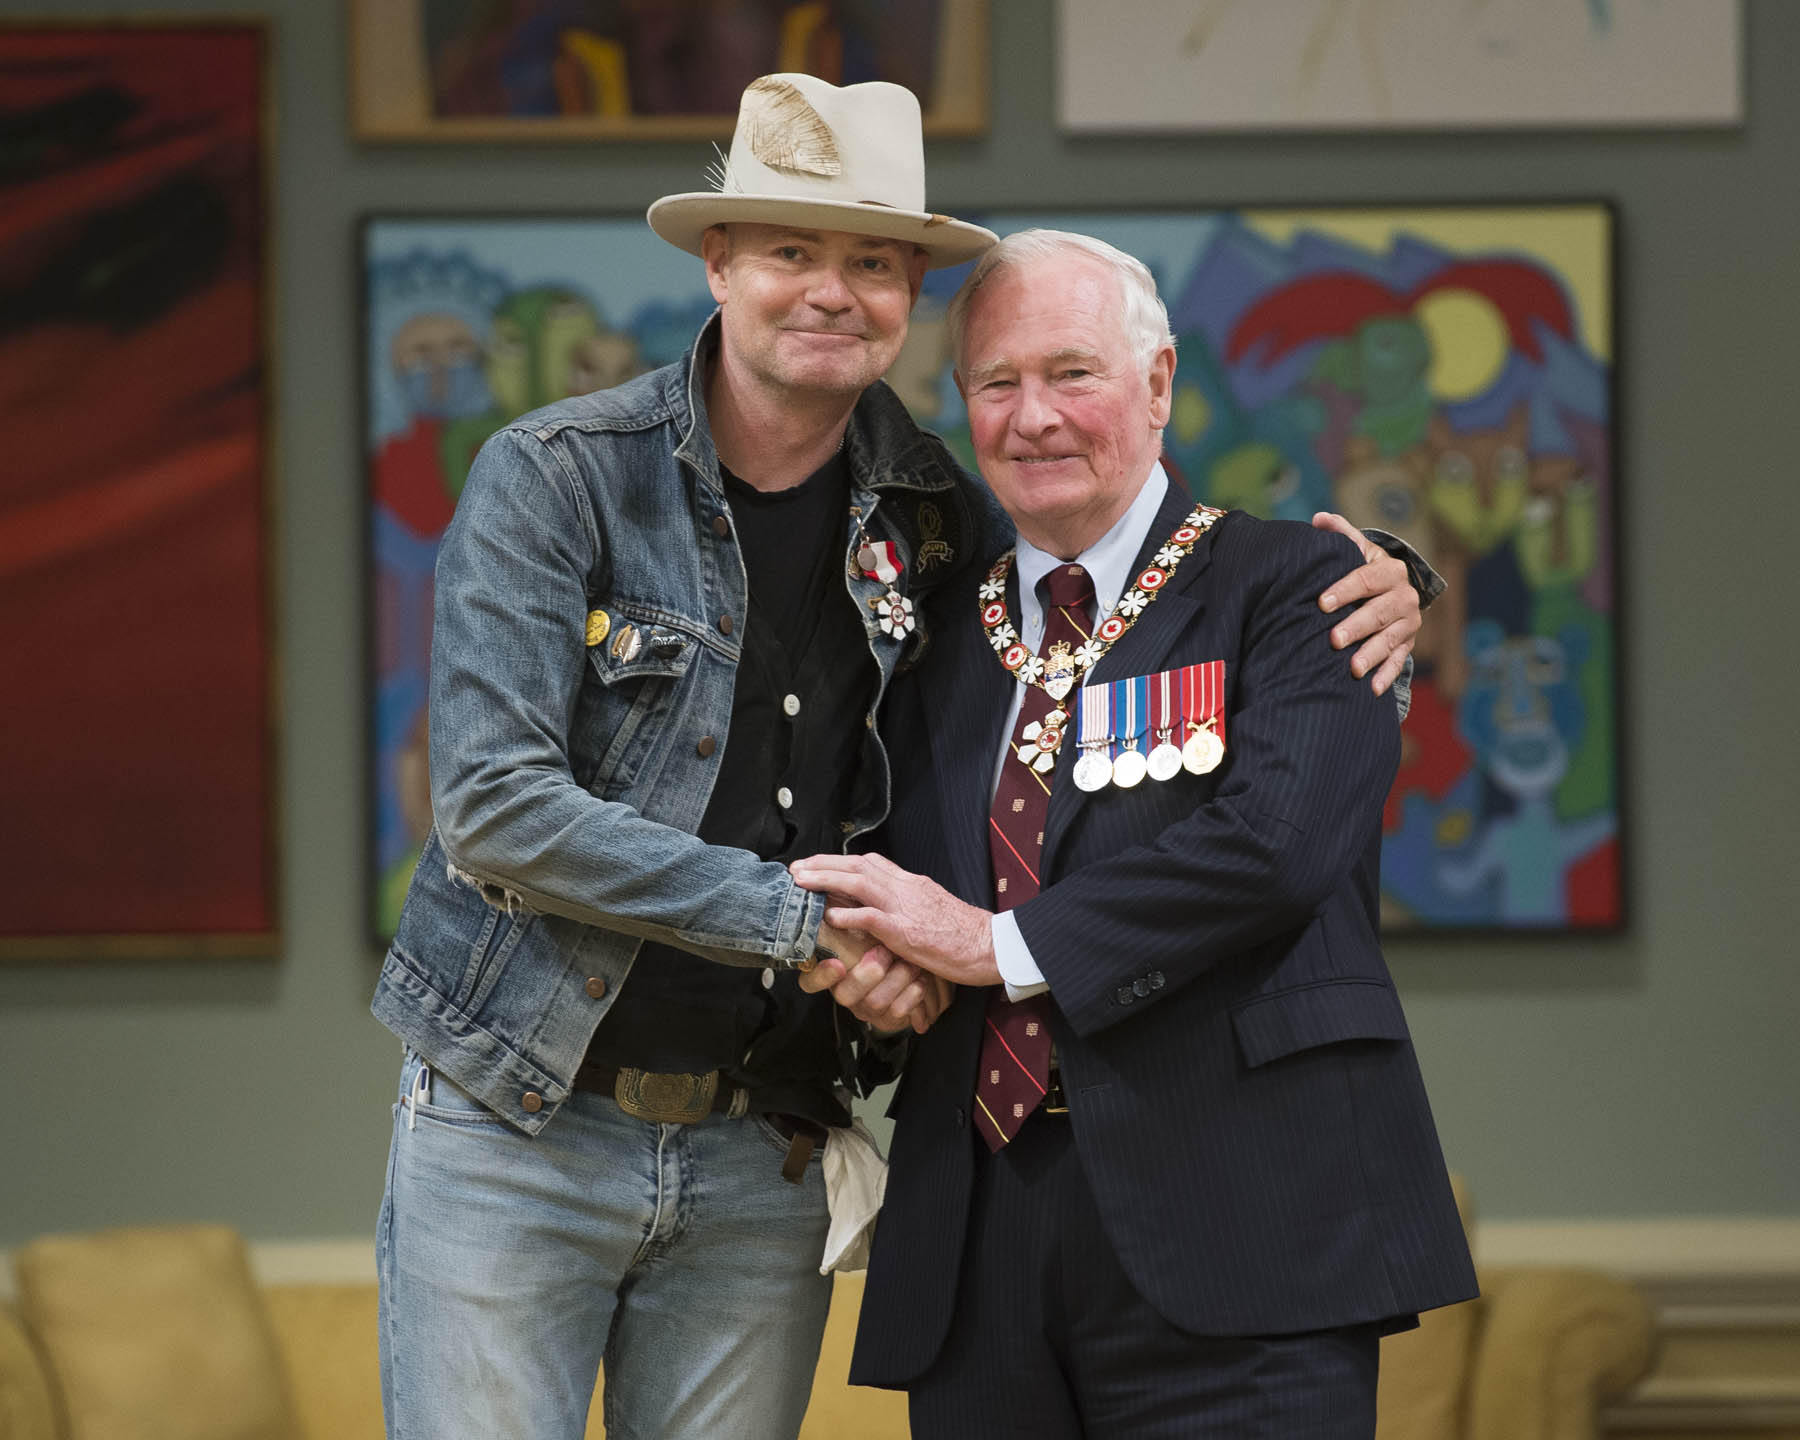 Gord Downie was invested Member of the Order of Canada. For over 30 years, Mr. Downie has been the front man for The Tragically Hip and is considered one of Canada's most beloved artists. He is renowned for his memorable performances, his songwriting and his lyrical references that create a sense of what it is like to love, and live in, this country. His charitable contributions and social activism continue to have a significant impact. He is devoted to promoting dialogue, raising awareness of the history of residential schools and moving the country along the path to reconciliation. The Order of Canada insignia awarded to the other members of  The Tragically Hip (Rob Baker, Johnny Fay, Paul Langlois and Gord Sinclair) will be presented to them at a later date.